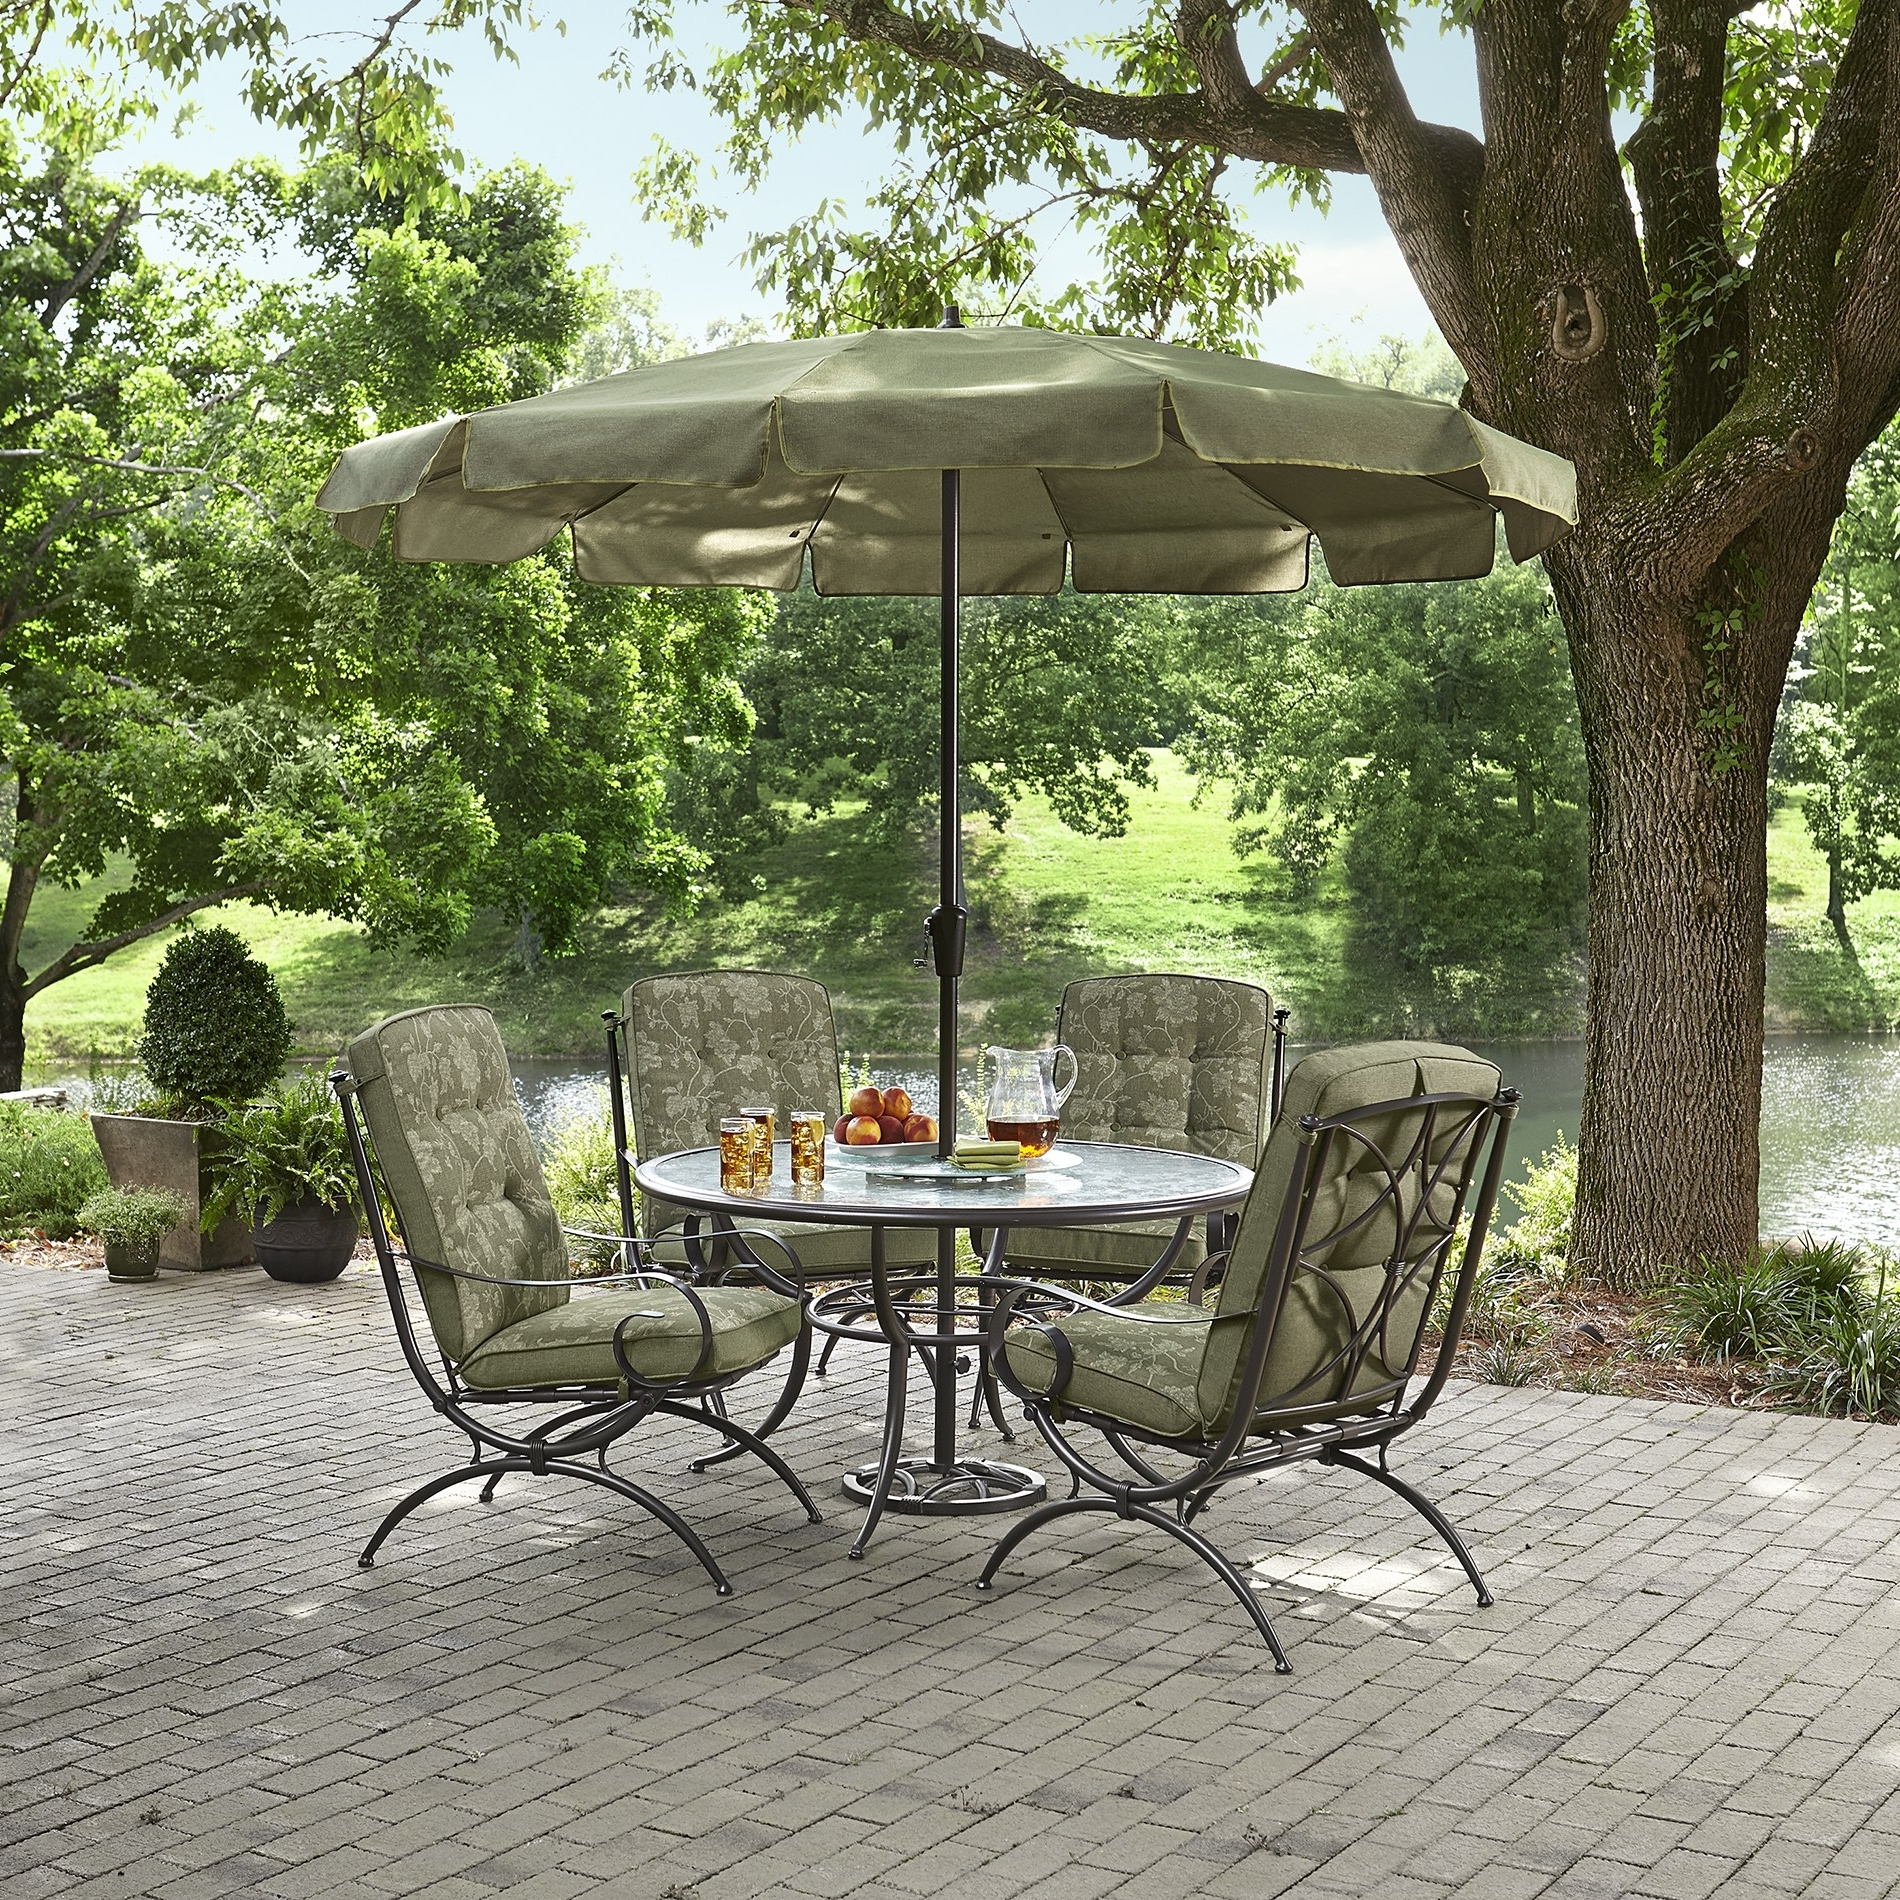 Famous Kmart Patio Umbrellas In Peaceably Cheap Wicker Furniture Kmart Patio Umbrellas Sears Patio (View 4 of 20)